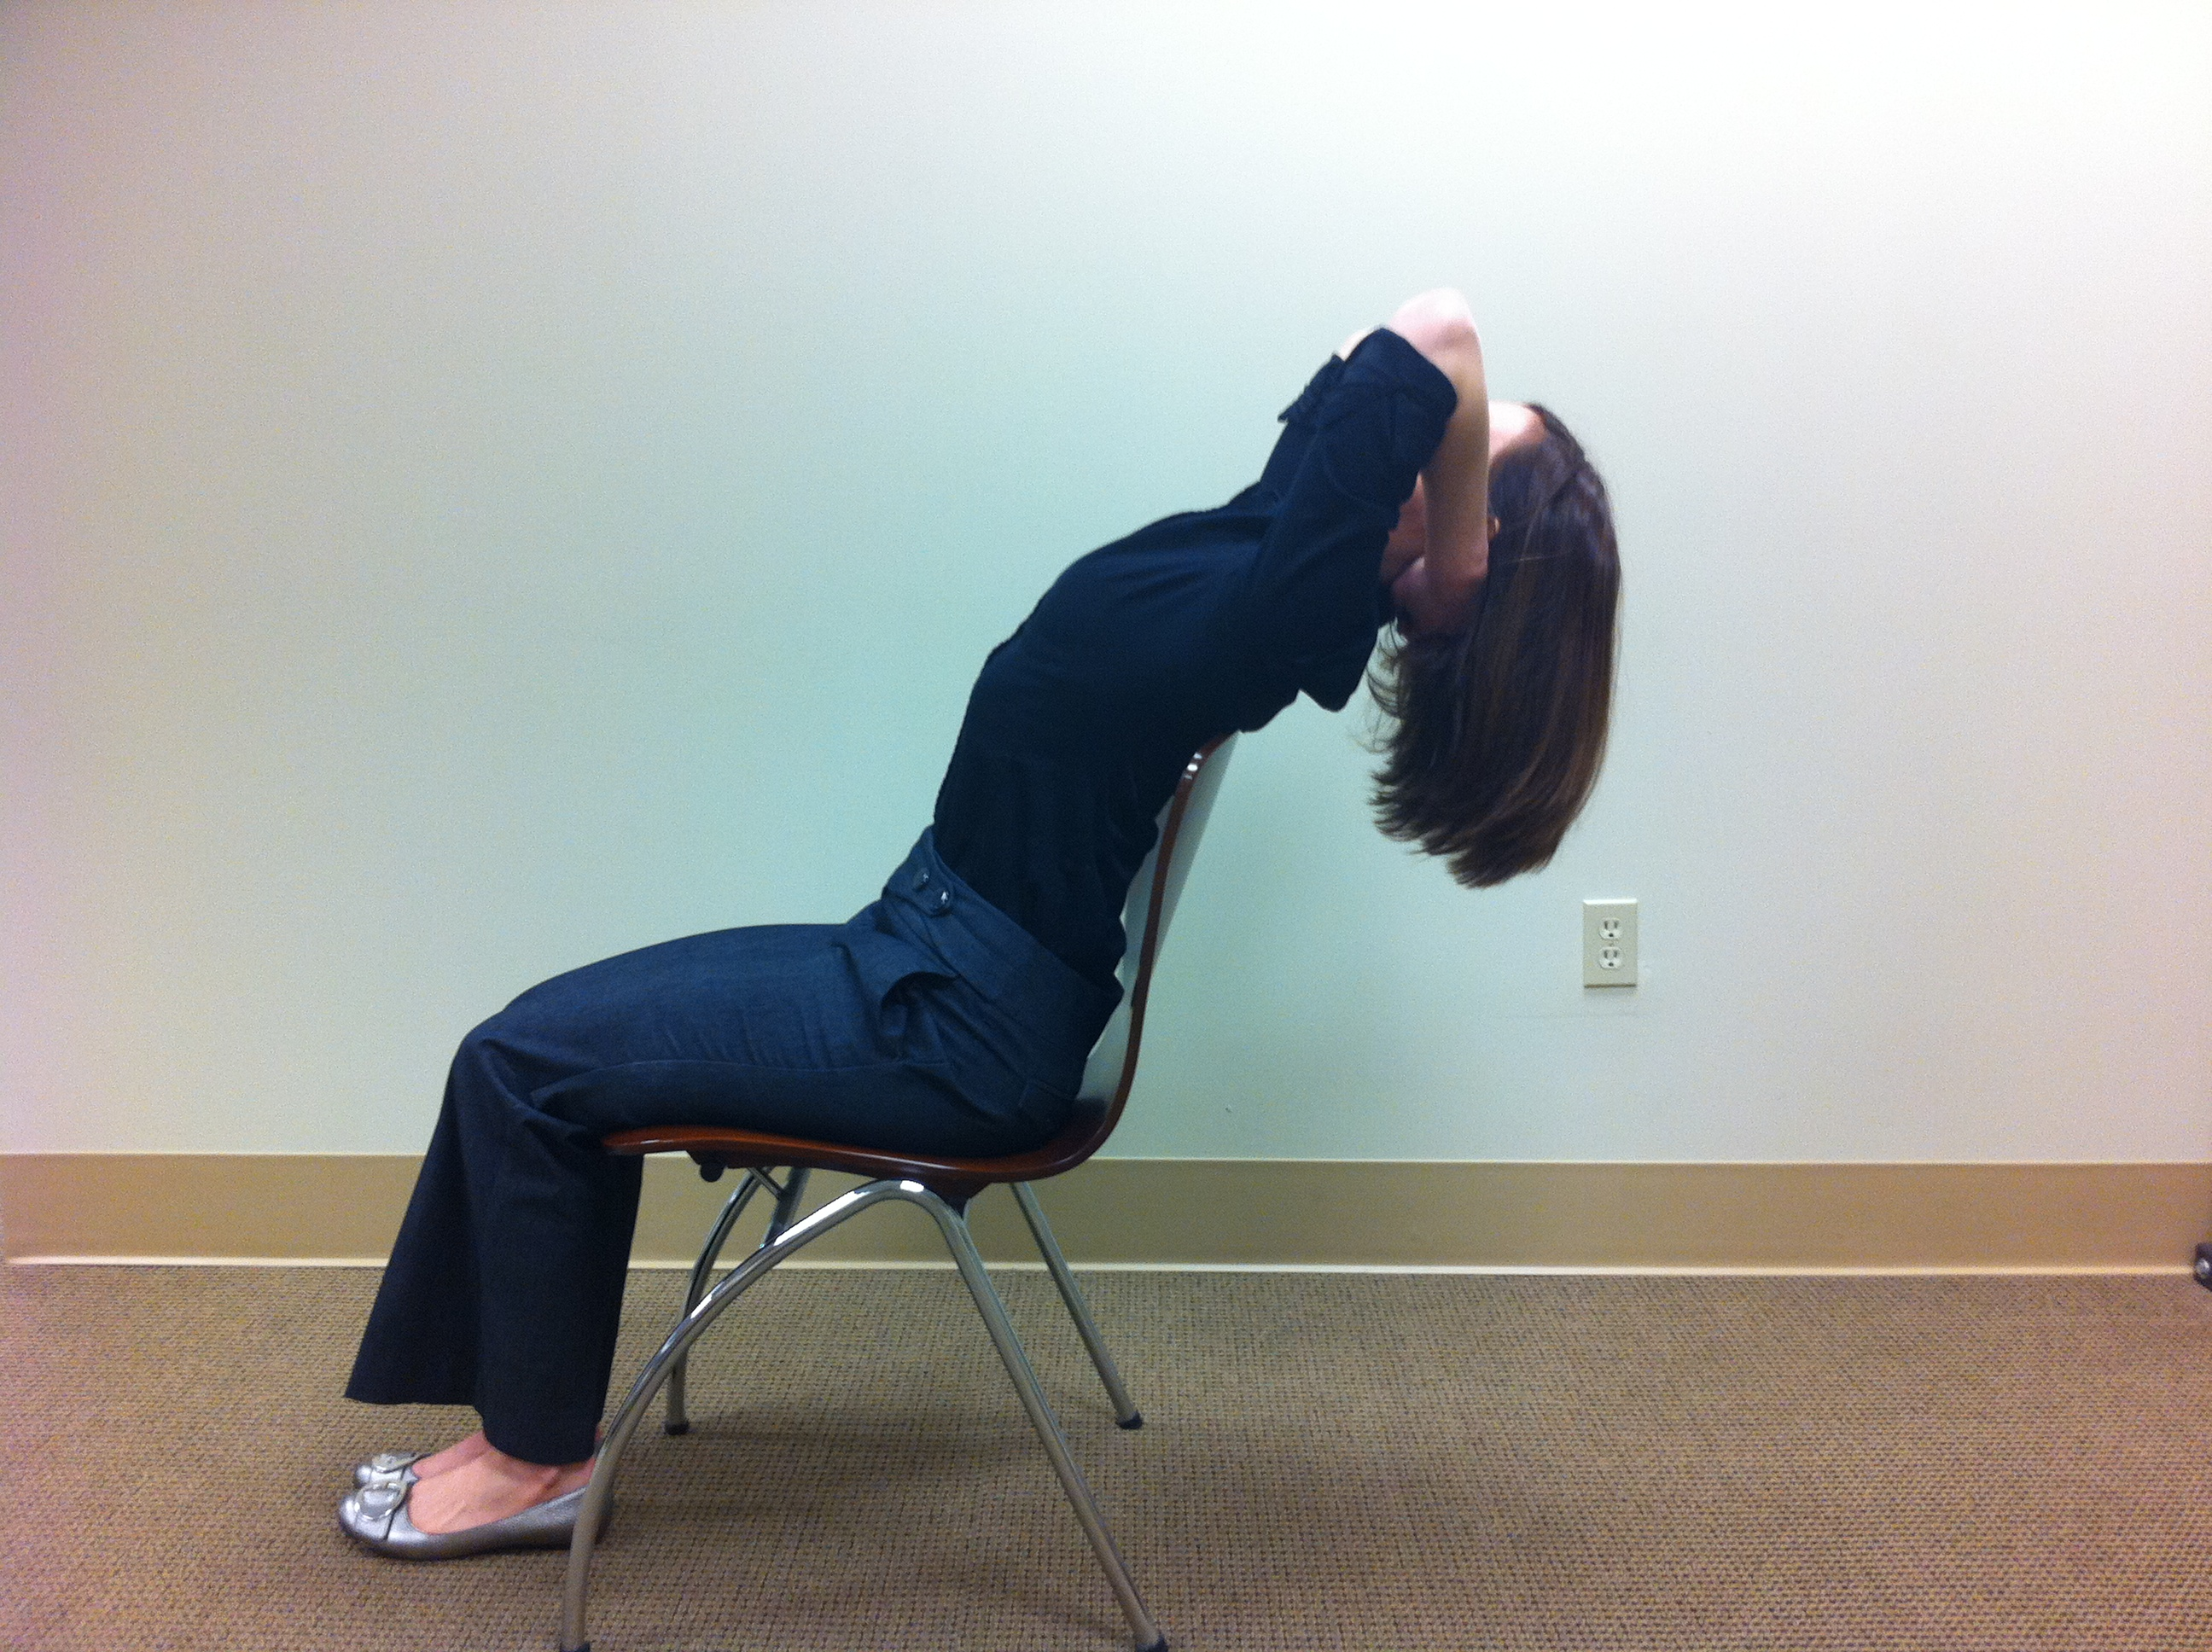 exercises at work